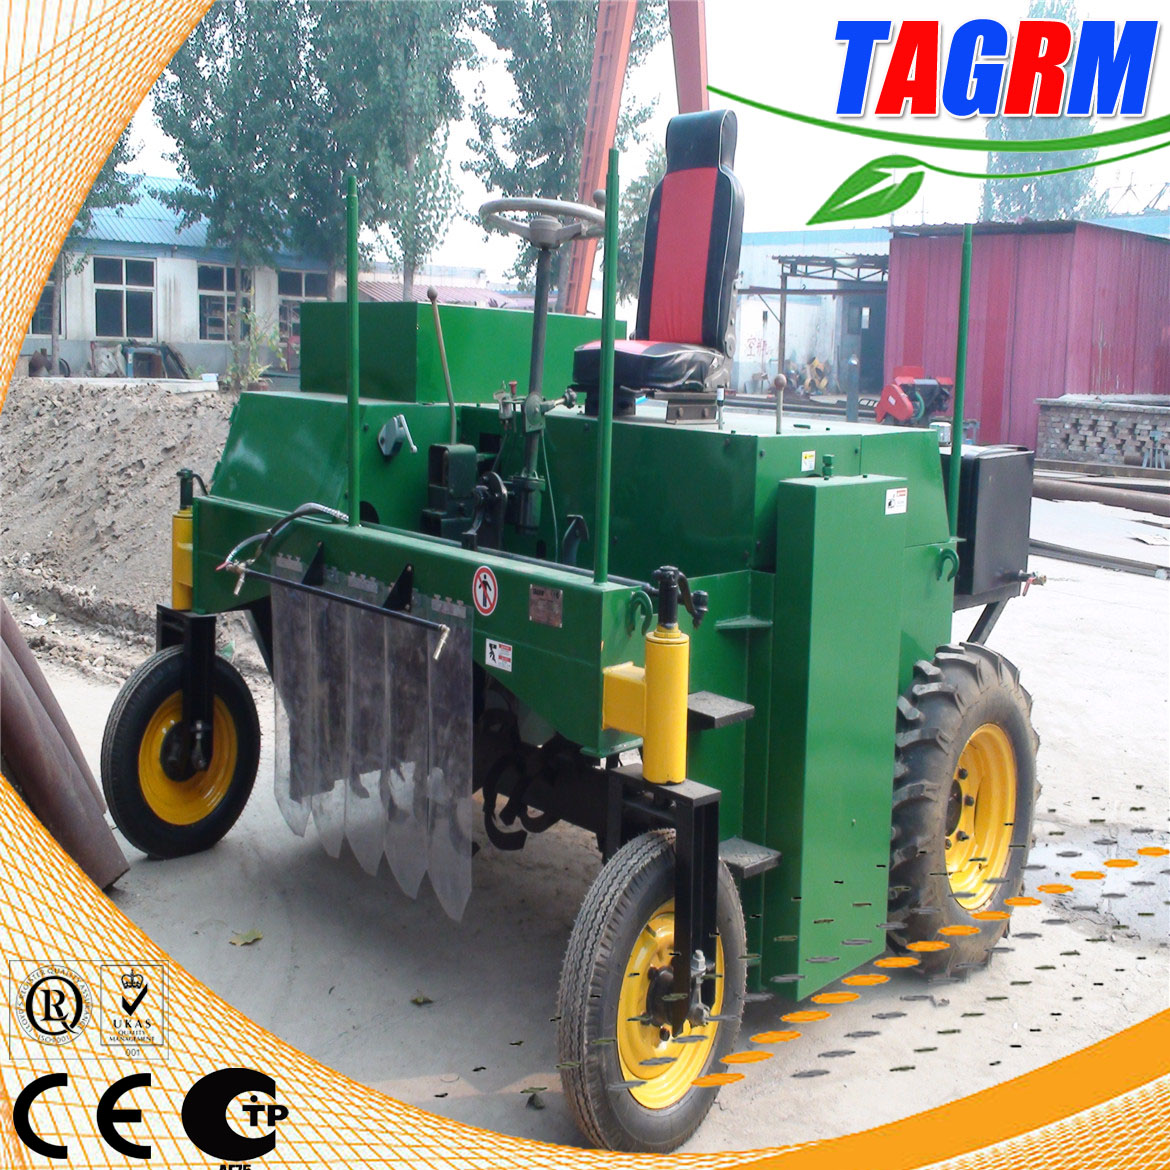 M2000 organic waste compost machine,compost mixer machine, compost turners